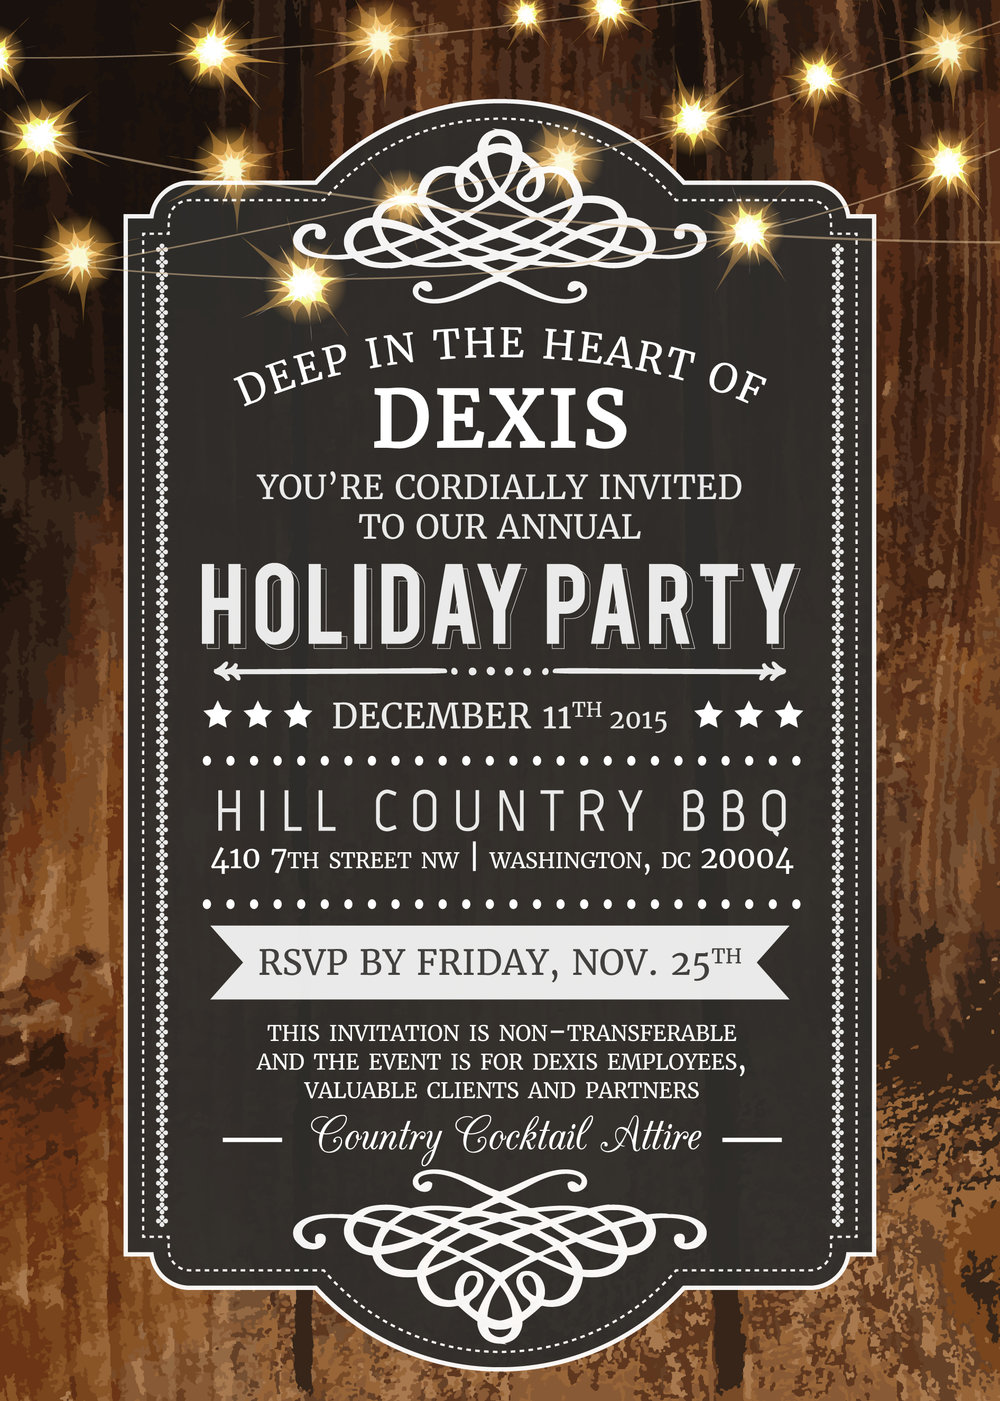 Dexis 2015 holiday invite_final-04.jpg